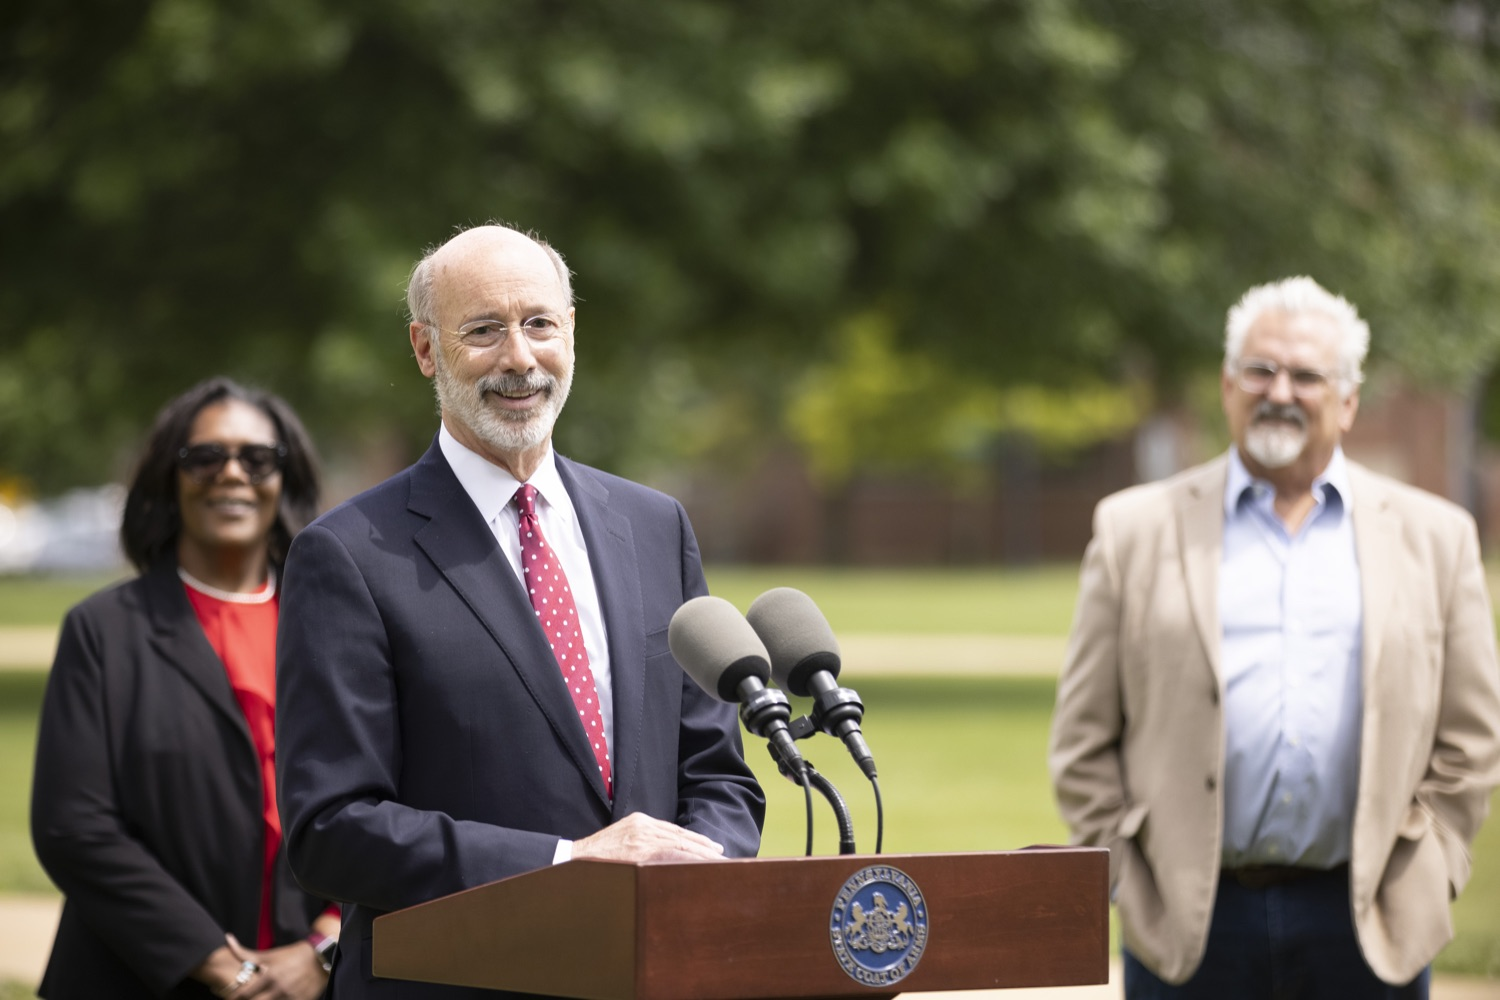 """<a href=""""https://filesource.wostreaming.net/commonwealthofpa/photo/18796_gov_charterSchool_dz_018.jpg"""" target=""""_blank"""">⇣Download Photo<br></a>Pennsylvania Governor Tom Wolf speaking with the press.  With overwhelming support among school districts for his charter school accountability plan, Governor Tom Wolf visited J.P. McCaskey High School in Lancaster today to discuss his bipartisan proposal that saves an estimated $395 million a year. Lancaster, PA  June 01, 2021"""